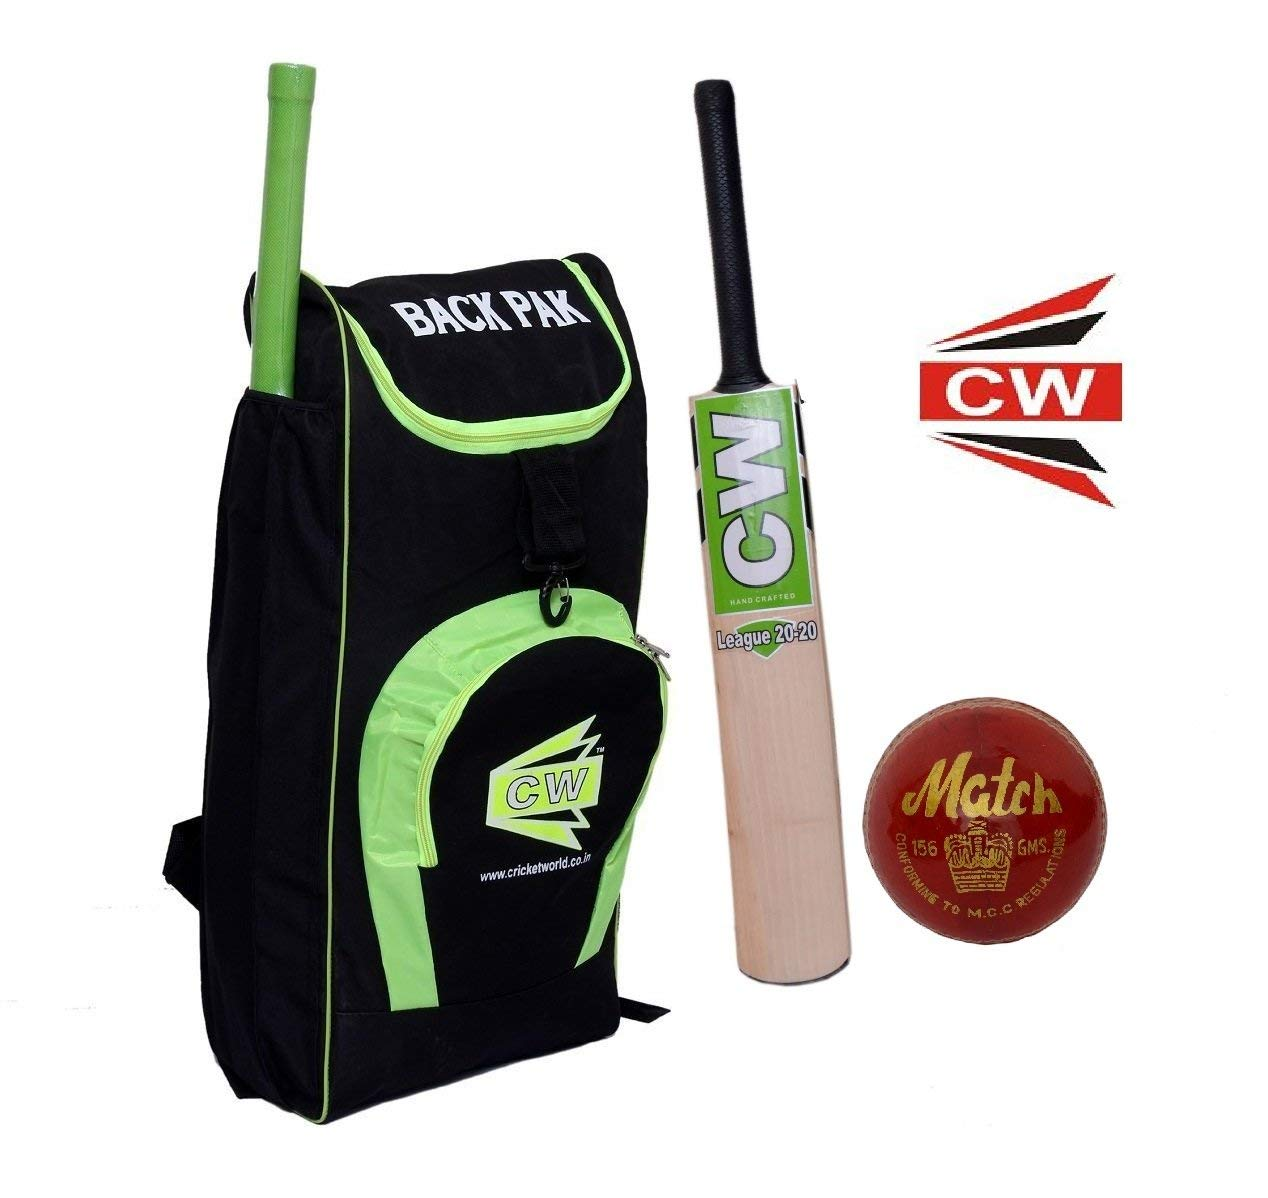 C&W Exclusive T20 Match Individual Prime Multiccolor Combo pack Sports Cricket Kit Set Inclusive Shoulder Cricket Equipment Shoulder Bag +Cricket Bat+Leather Ball